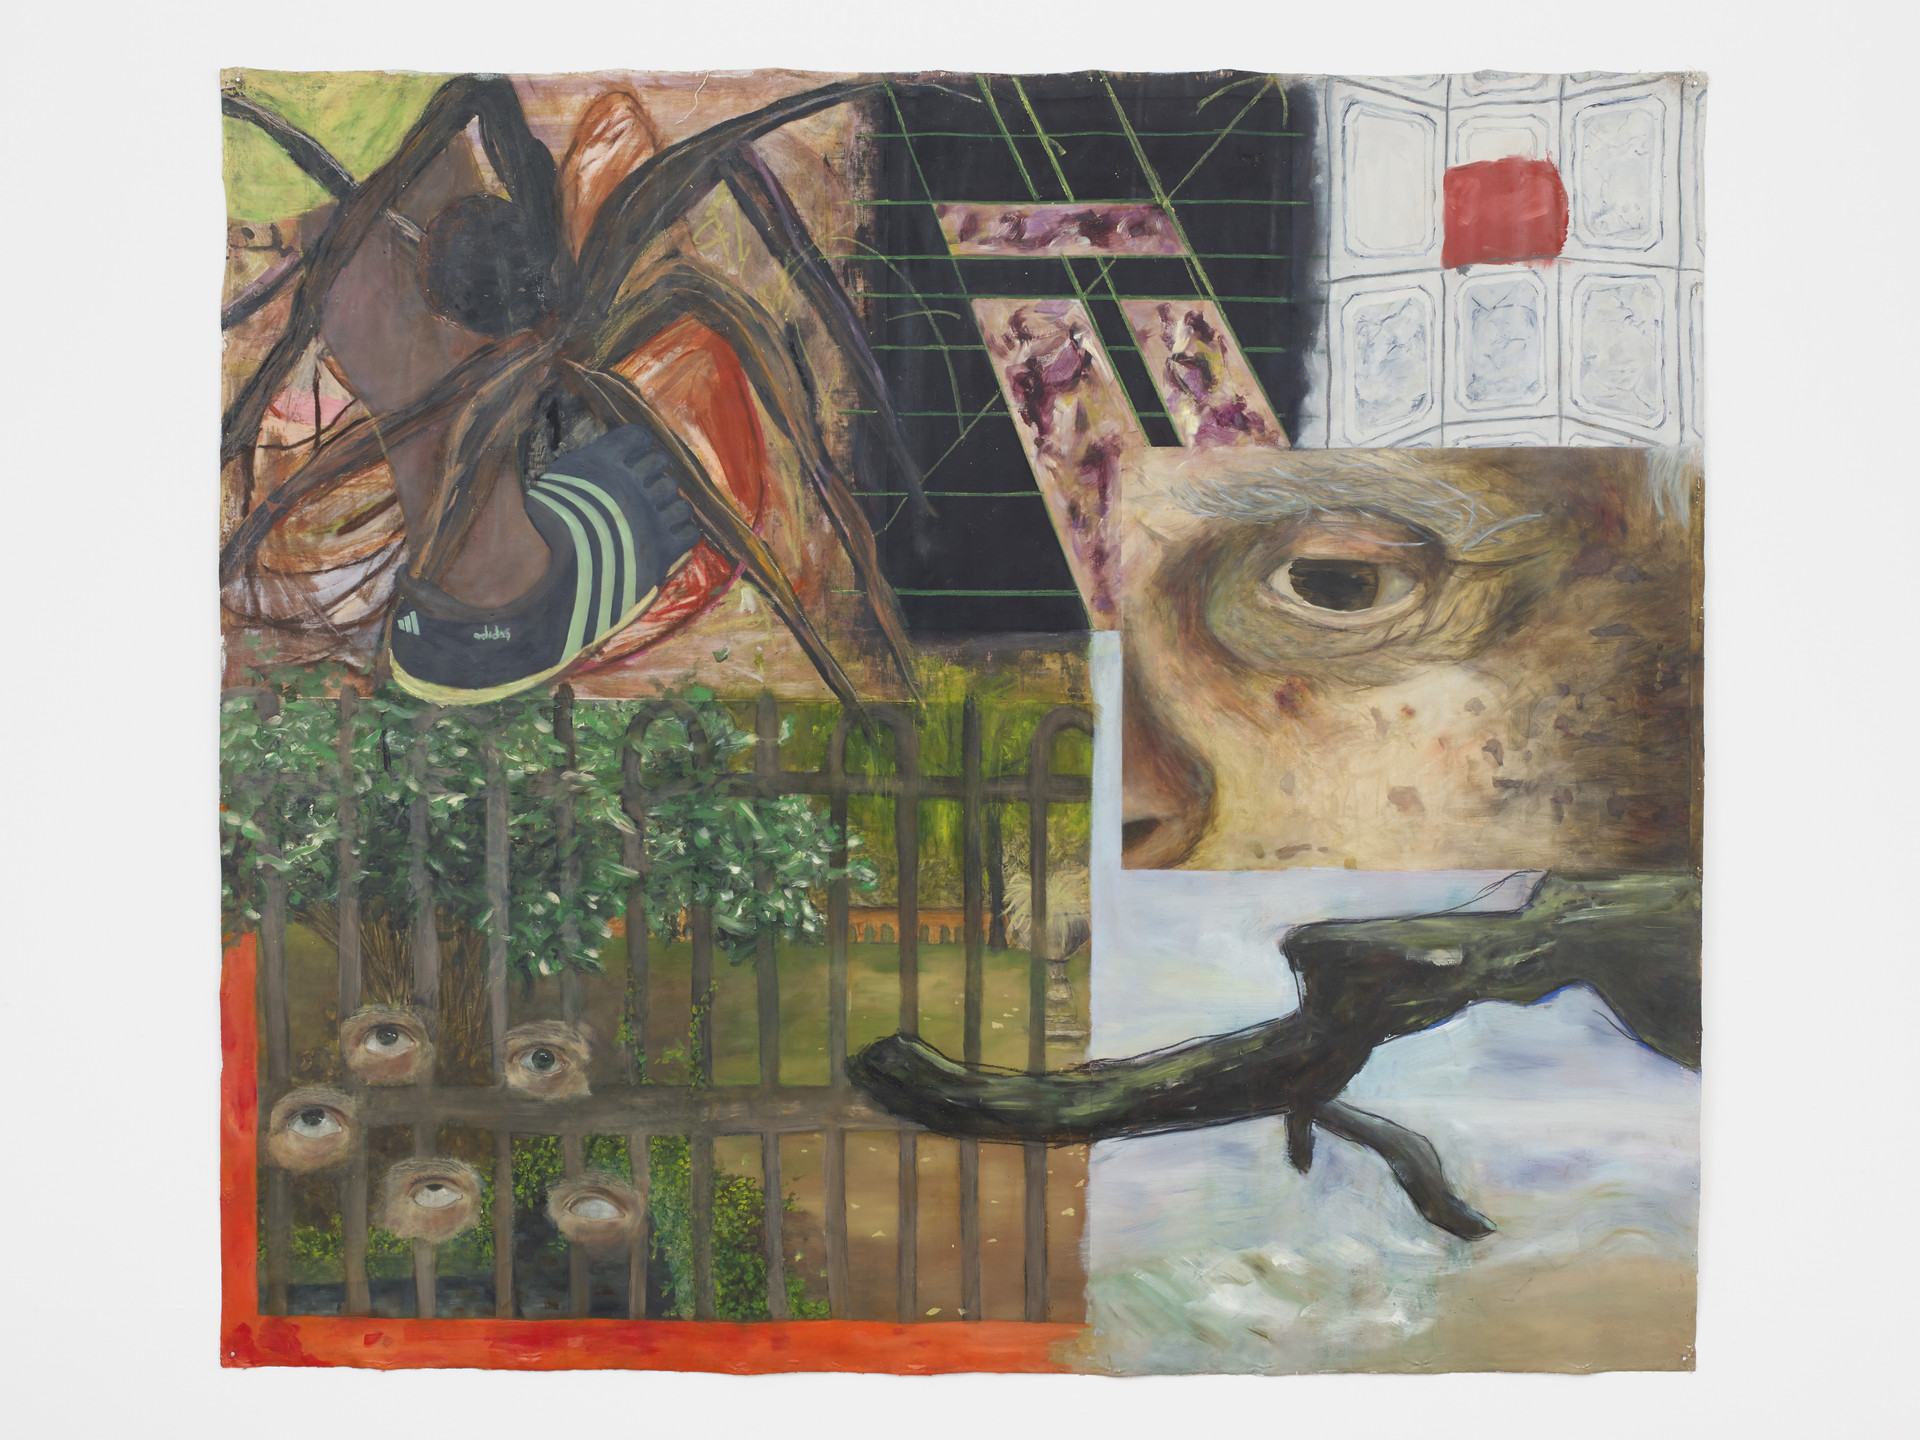 The Ineffable Cision of Seeing, 2015-18   Oil on Canvas    138 x 160 cm